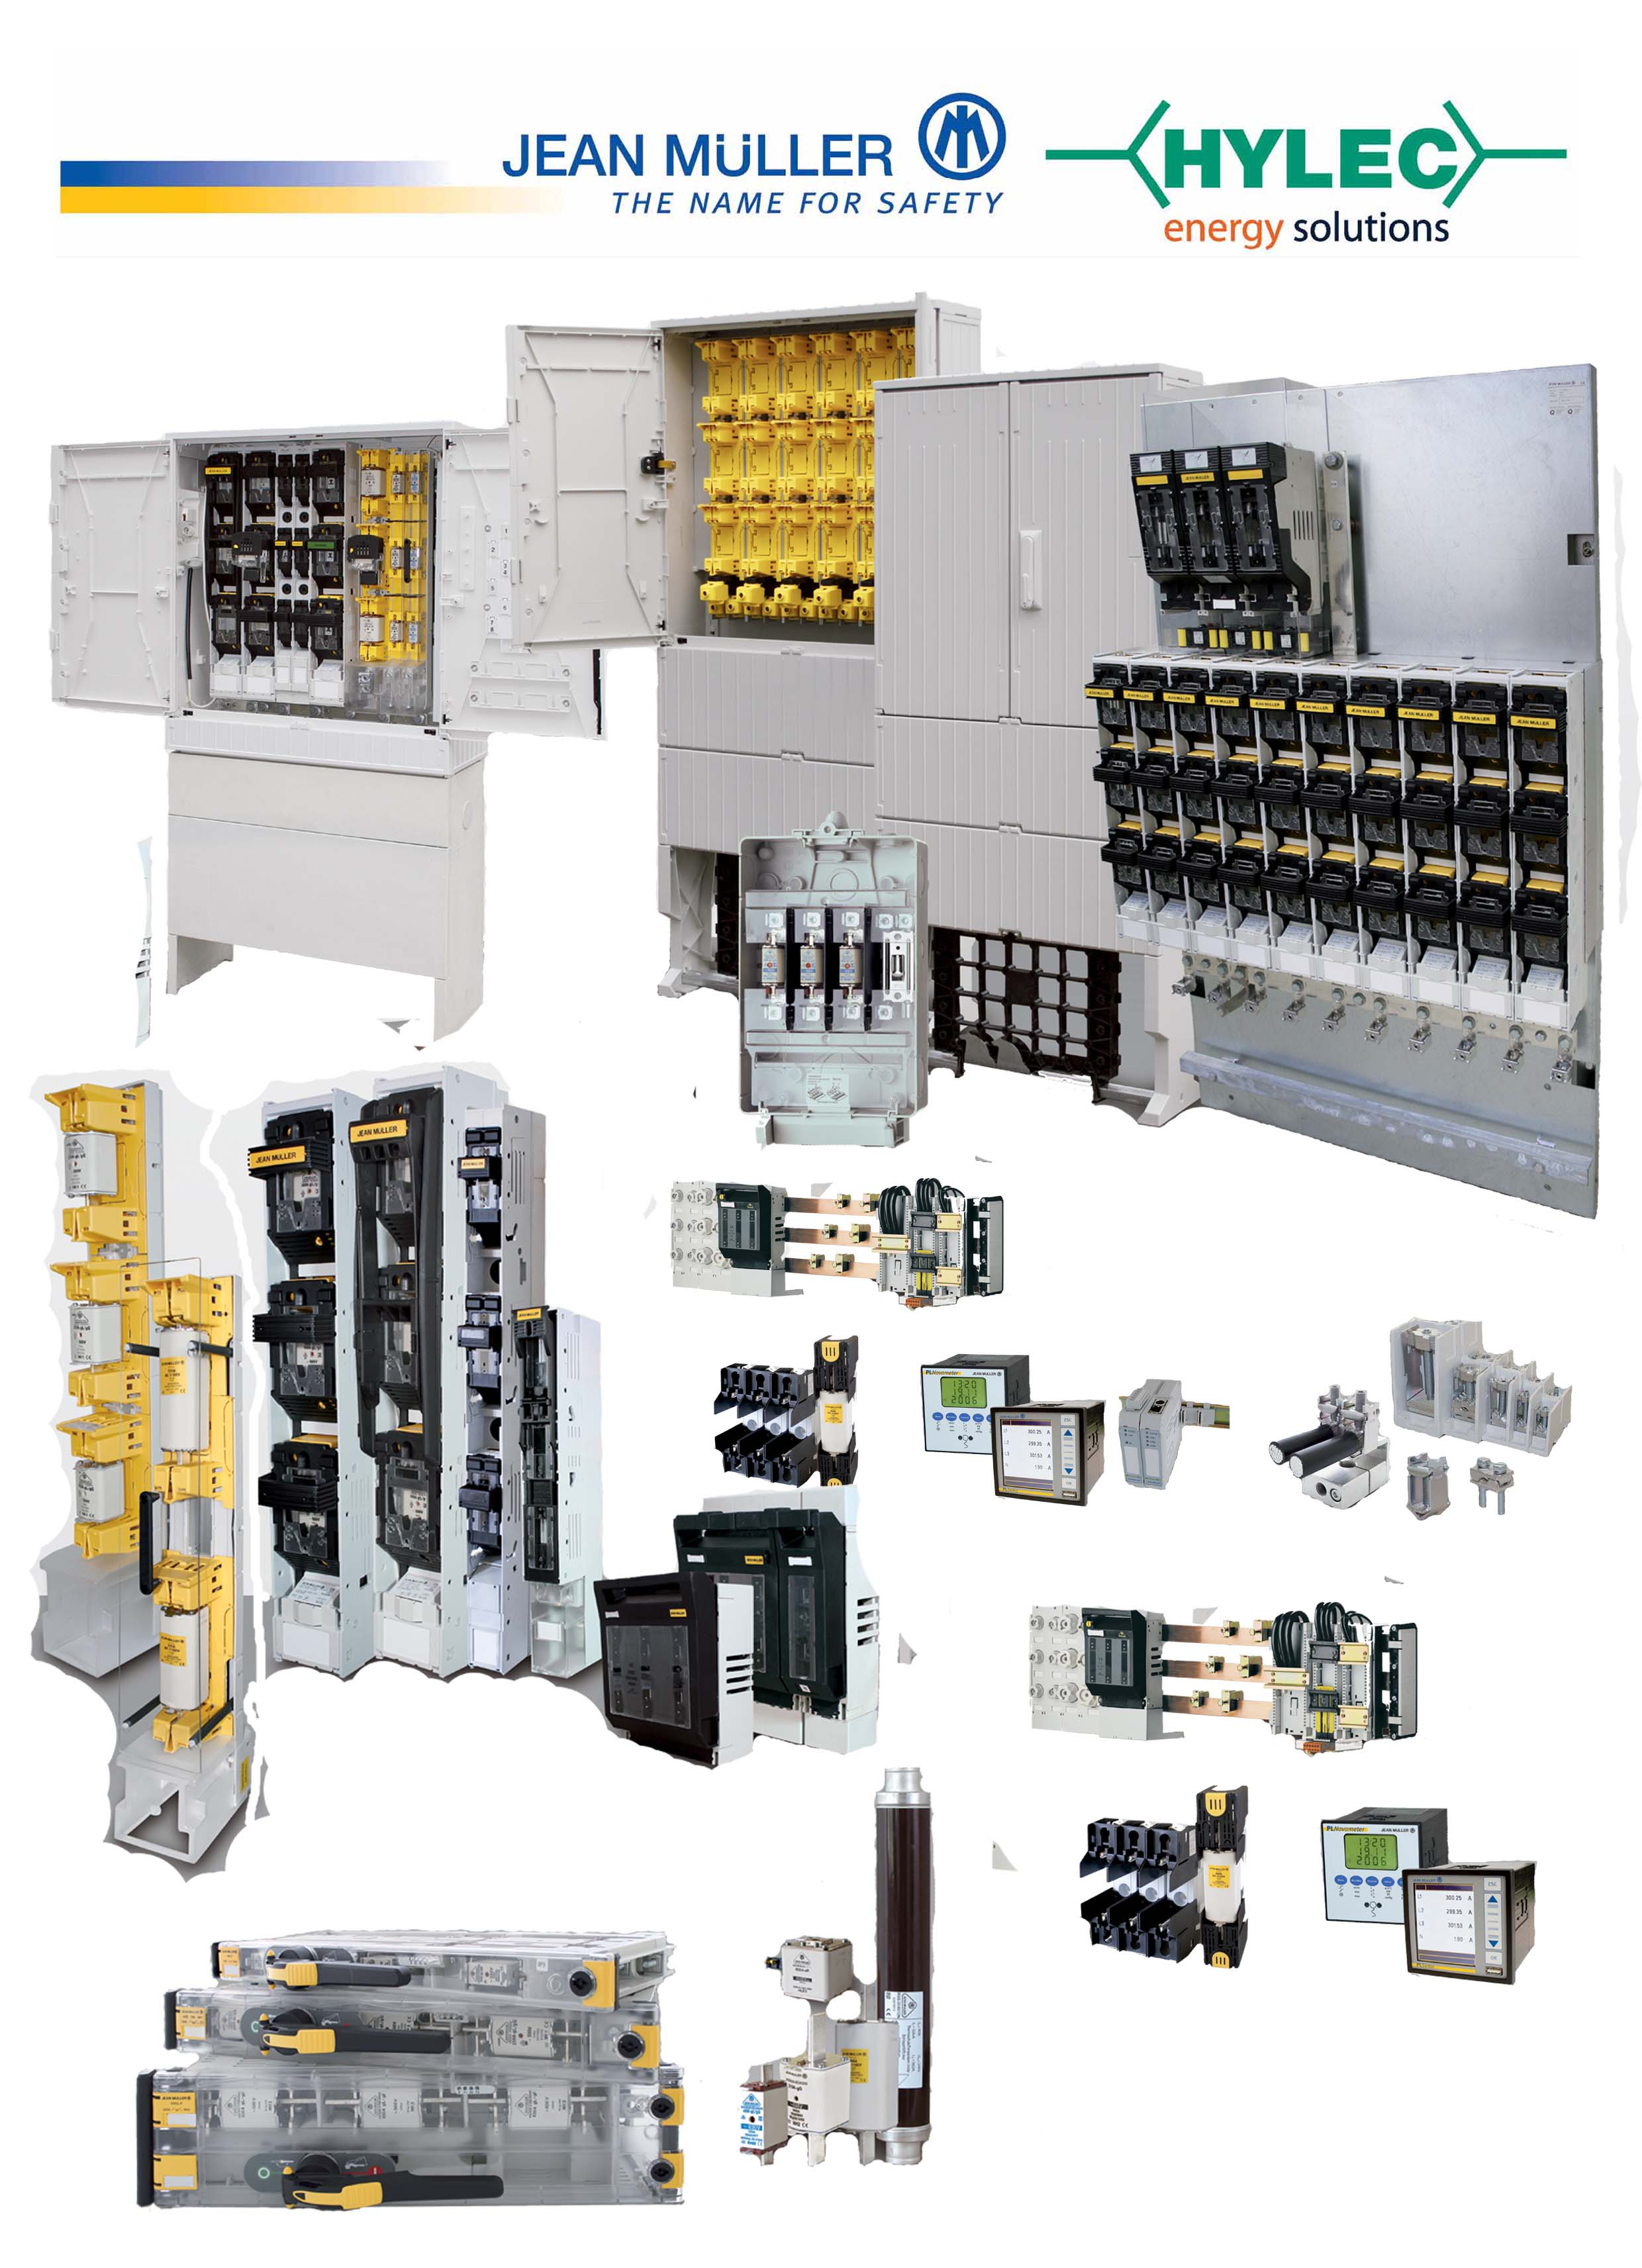 Jean Muller Electrical Distribution Catalogue (Excluding NZ)